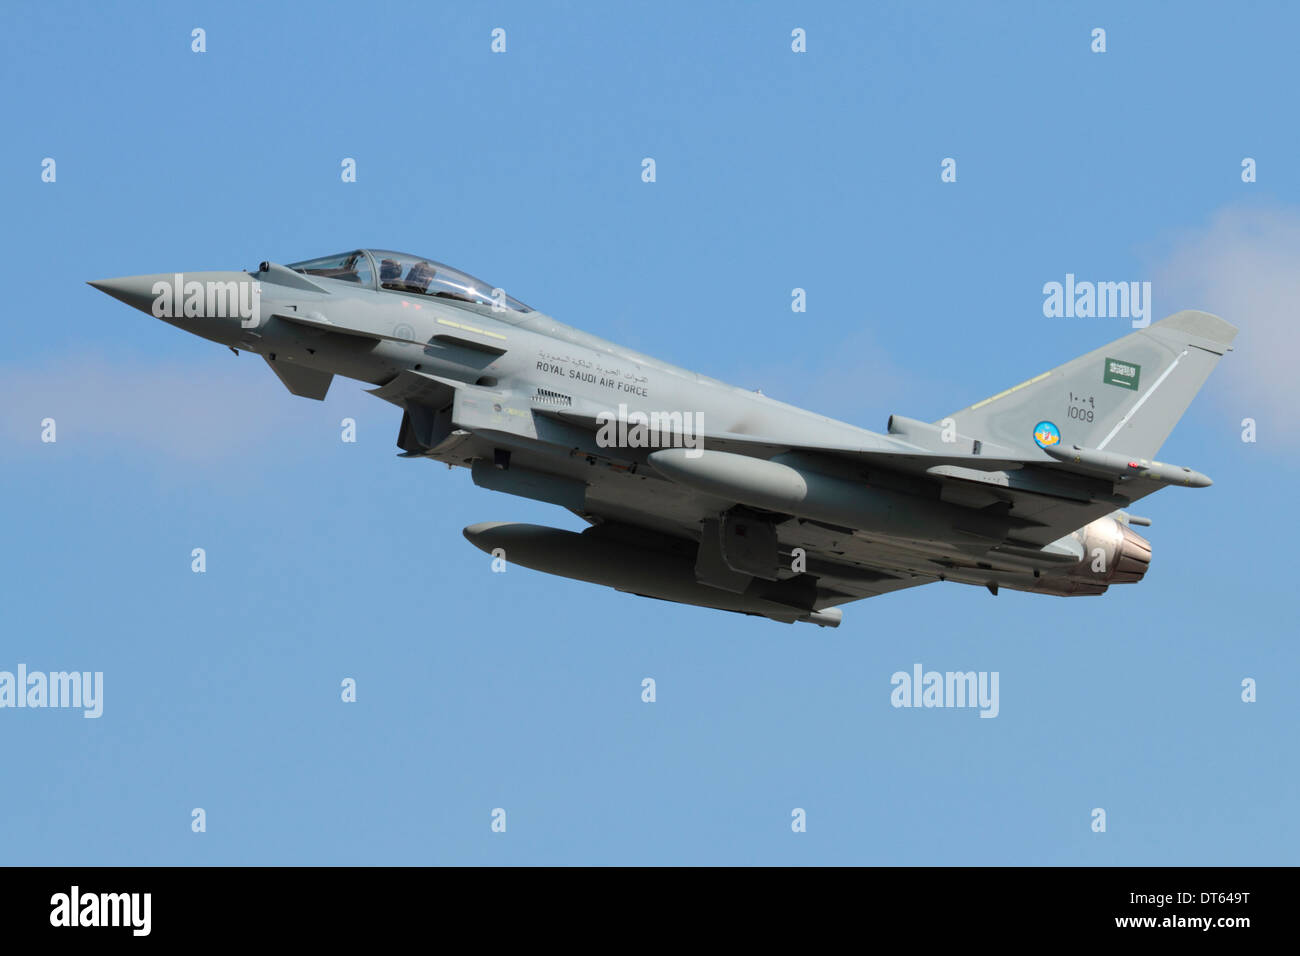 Military aviation. Eurofighter Typhoon jet fighter plane of the Royal Saudi Air Force flying and climbing on takeoff - Stock Image